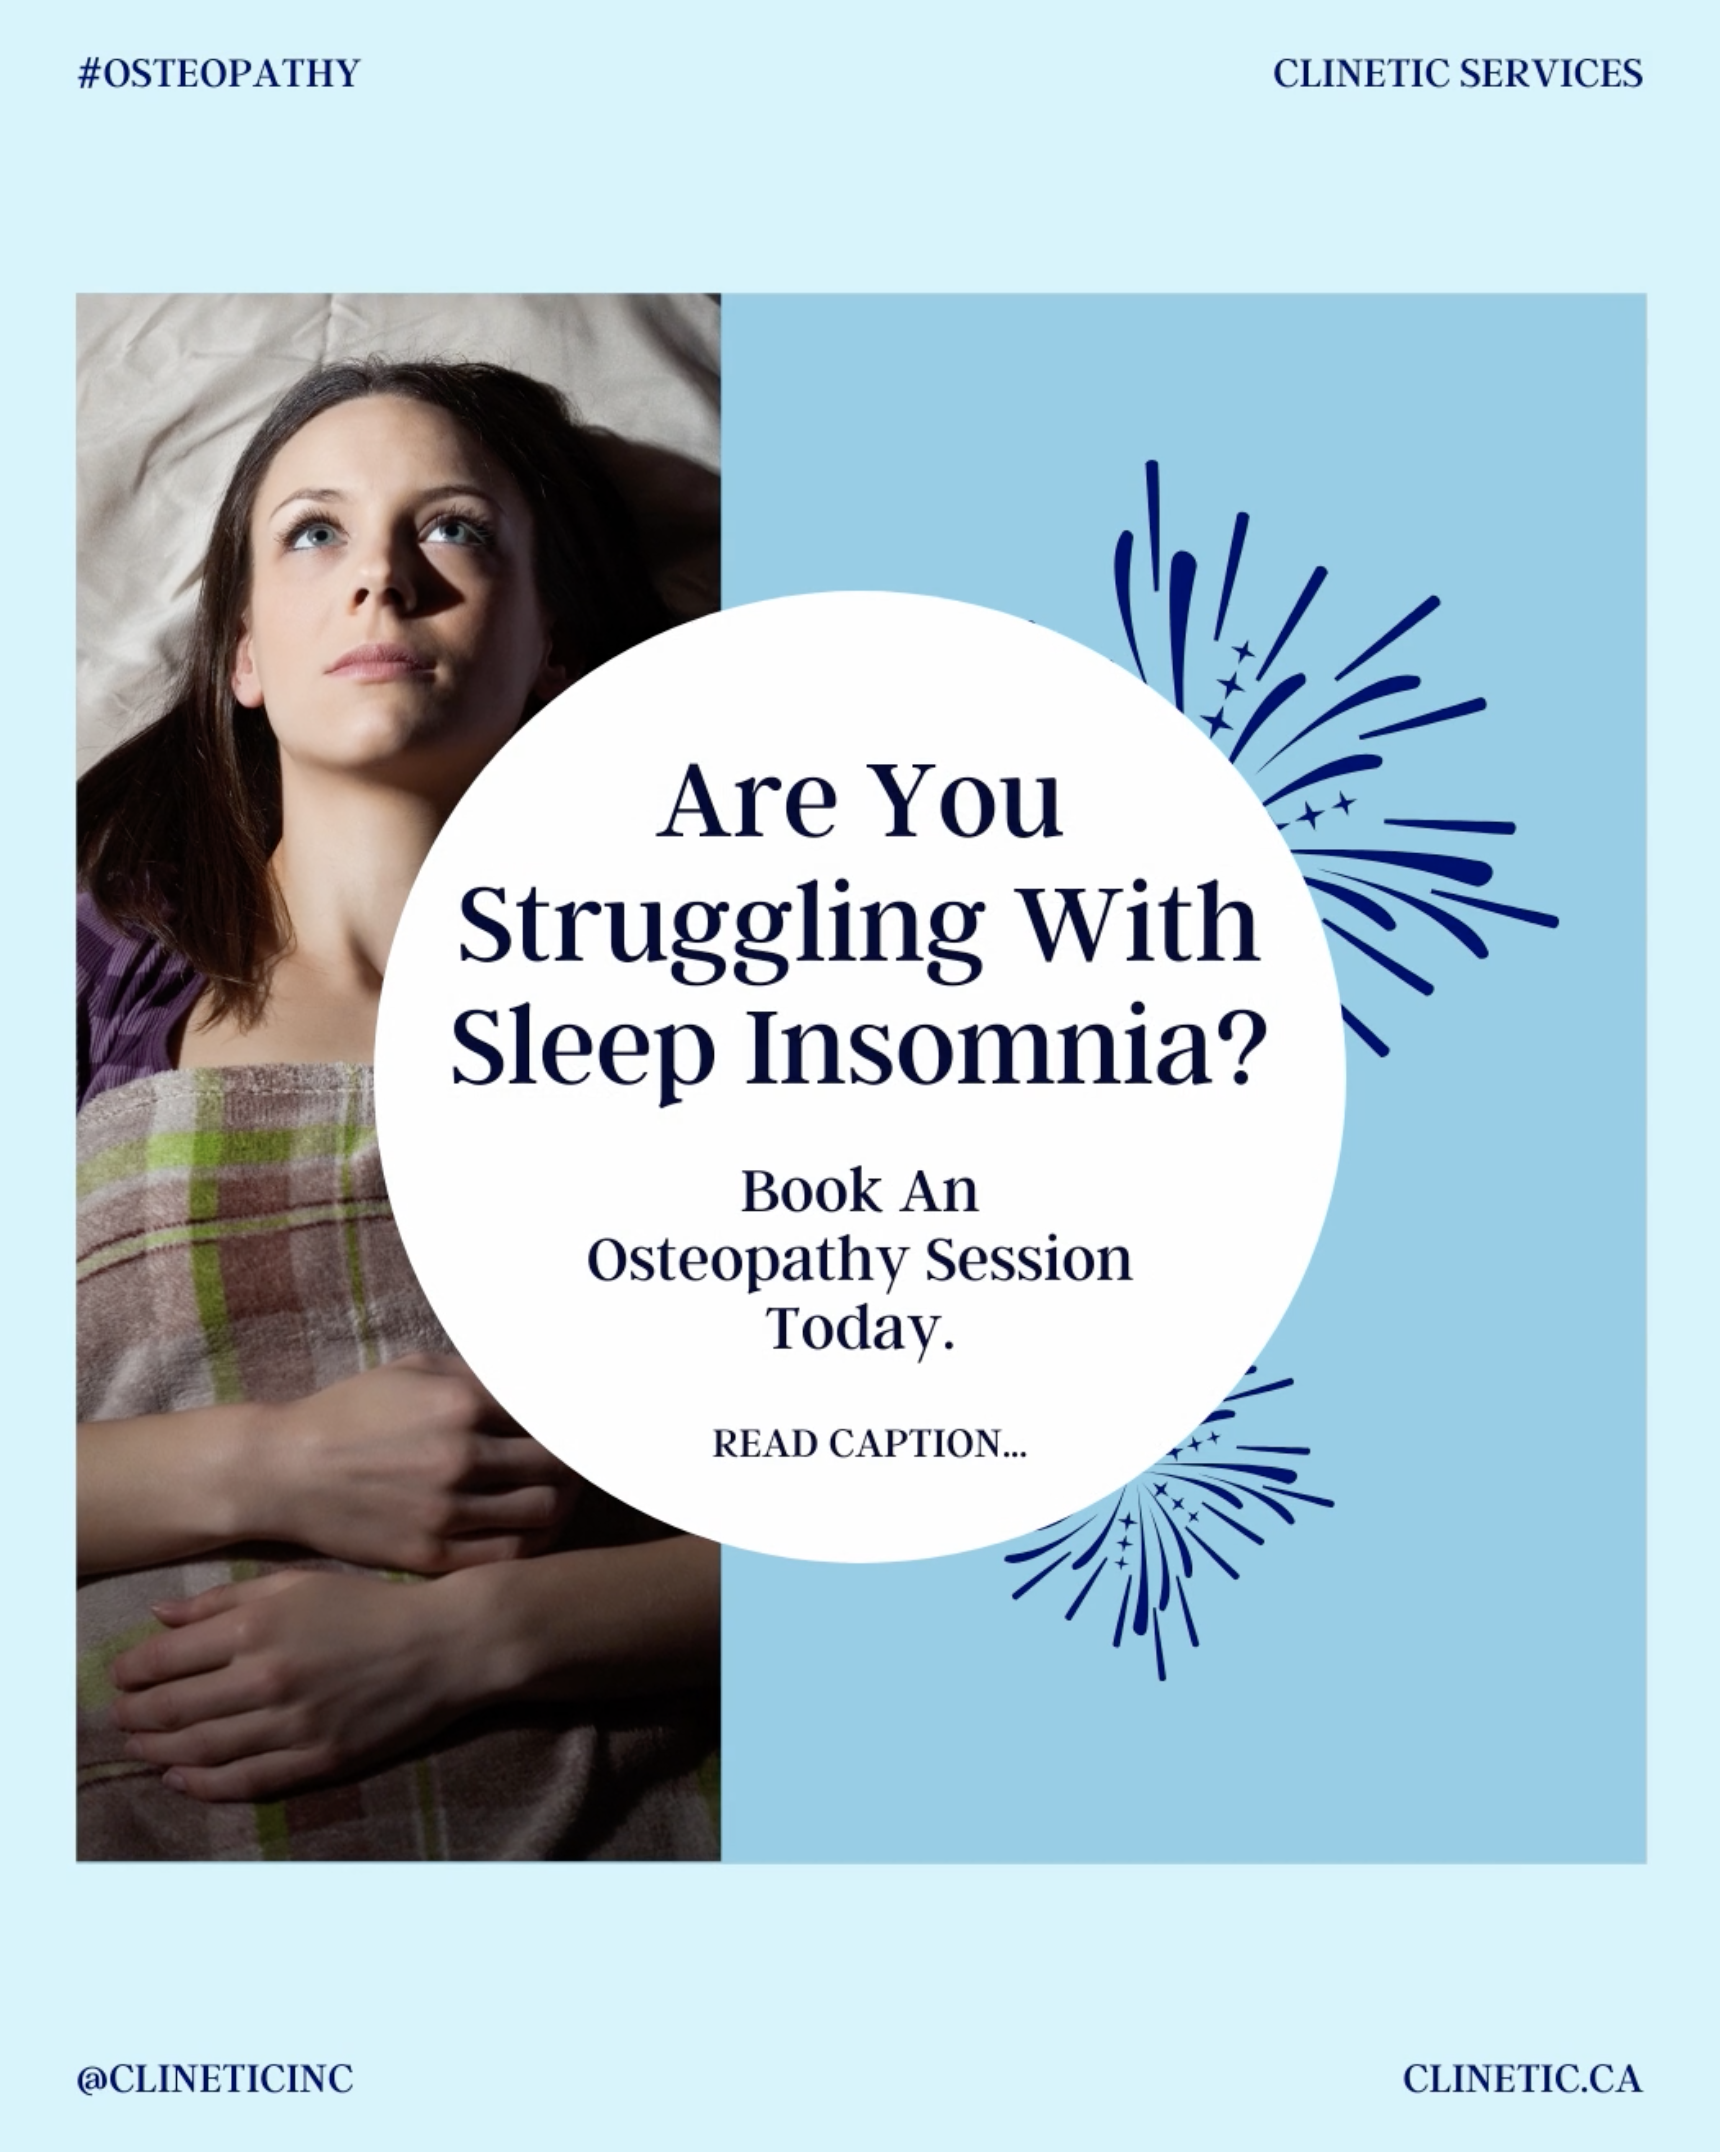 Are you struggling with sleep insomnia?